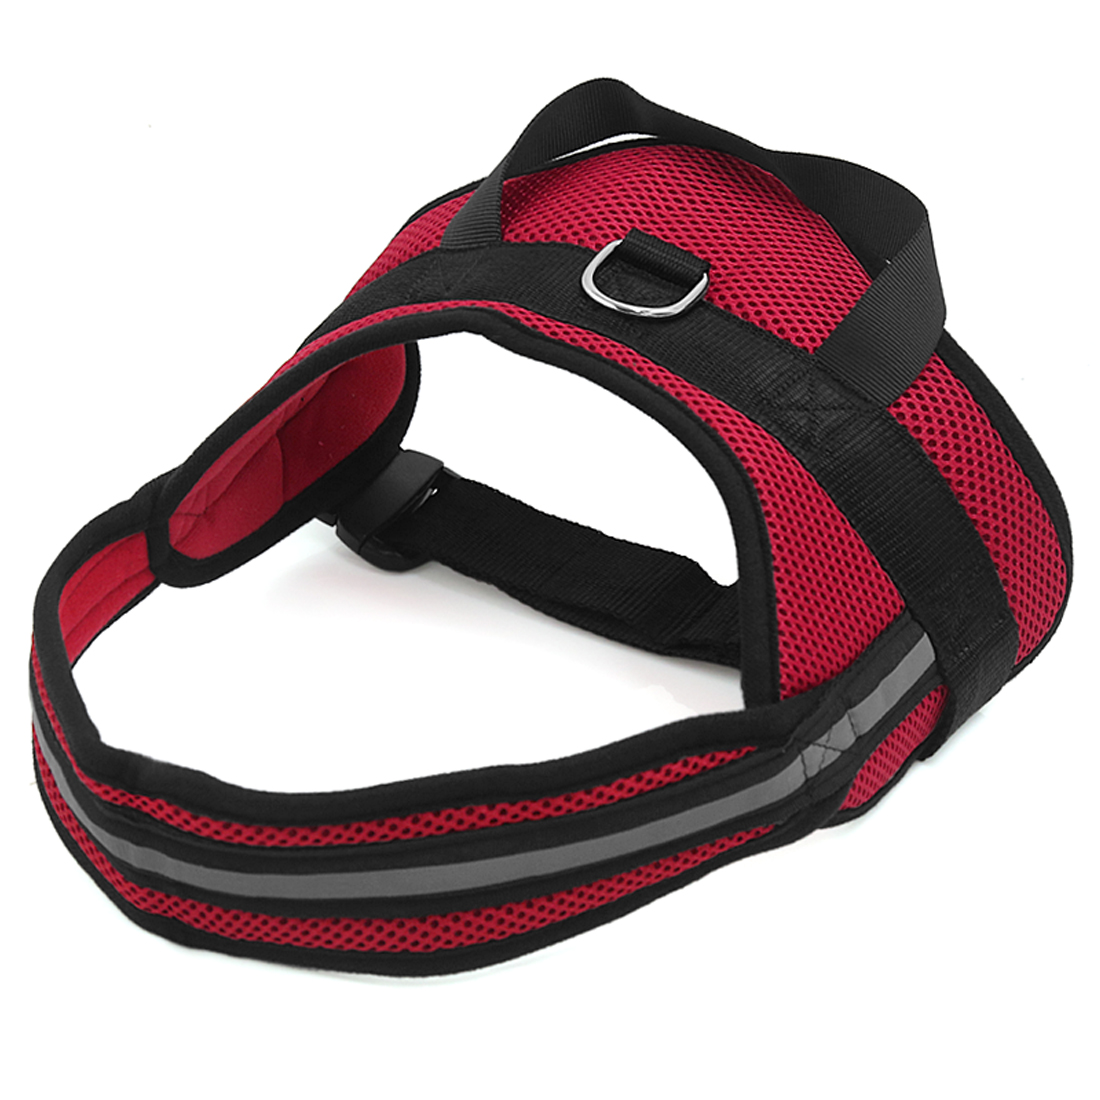 Big Dog Soft Mesh Reflective No Pull Harness Adjustable Large Pet Walk Vest Safe Control Collar Red XS